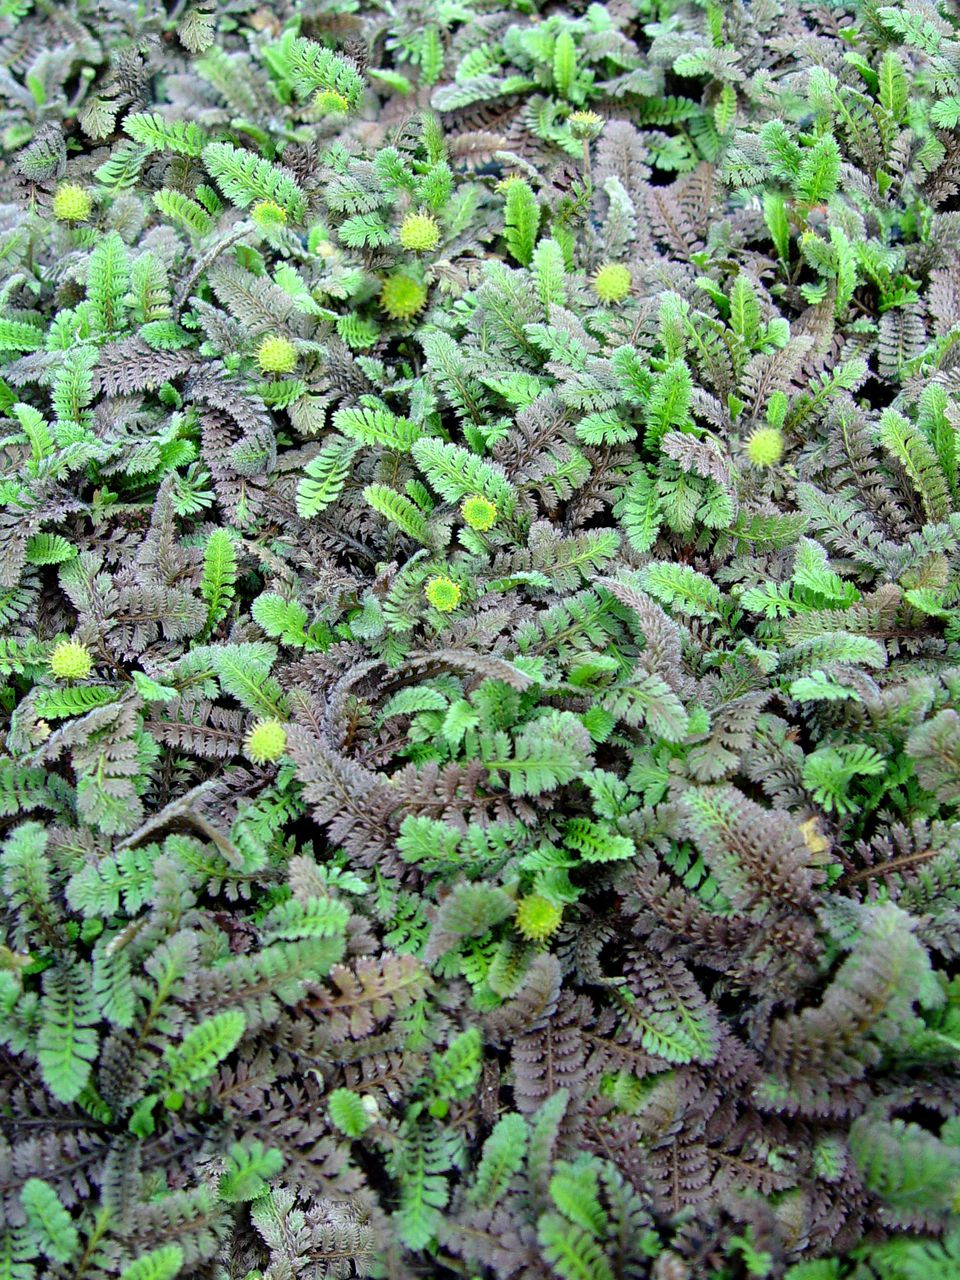 Leptinella squalida (New Zealand Brass Buttons)